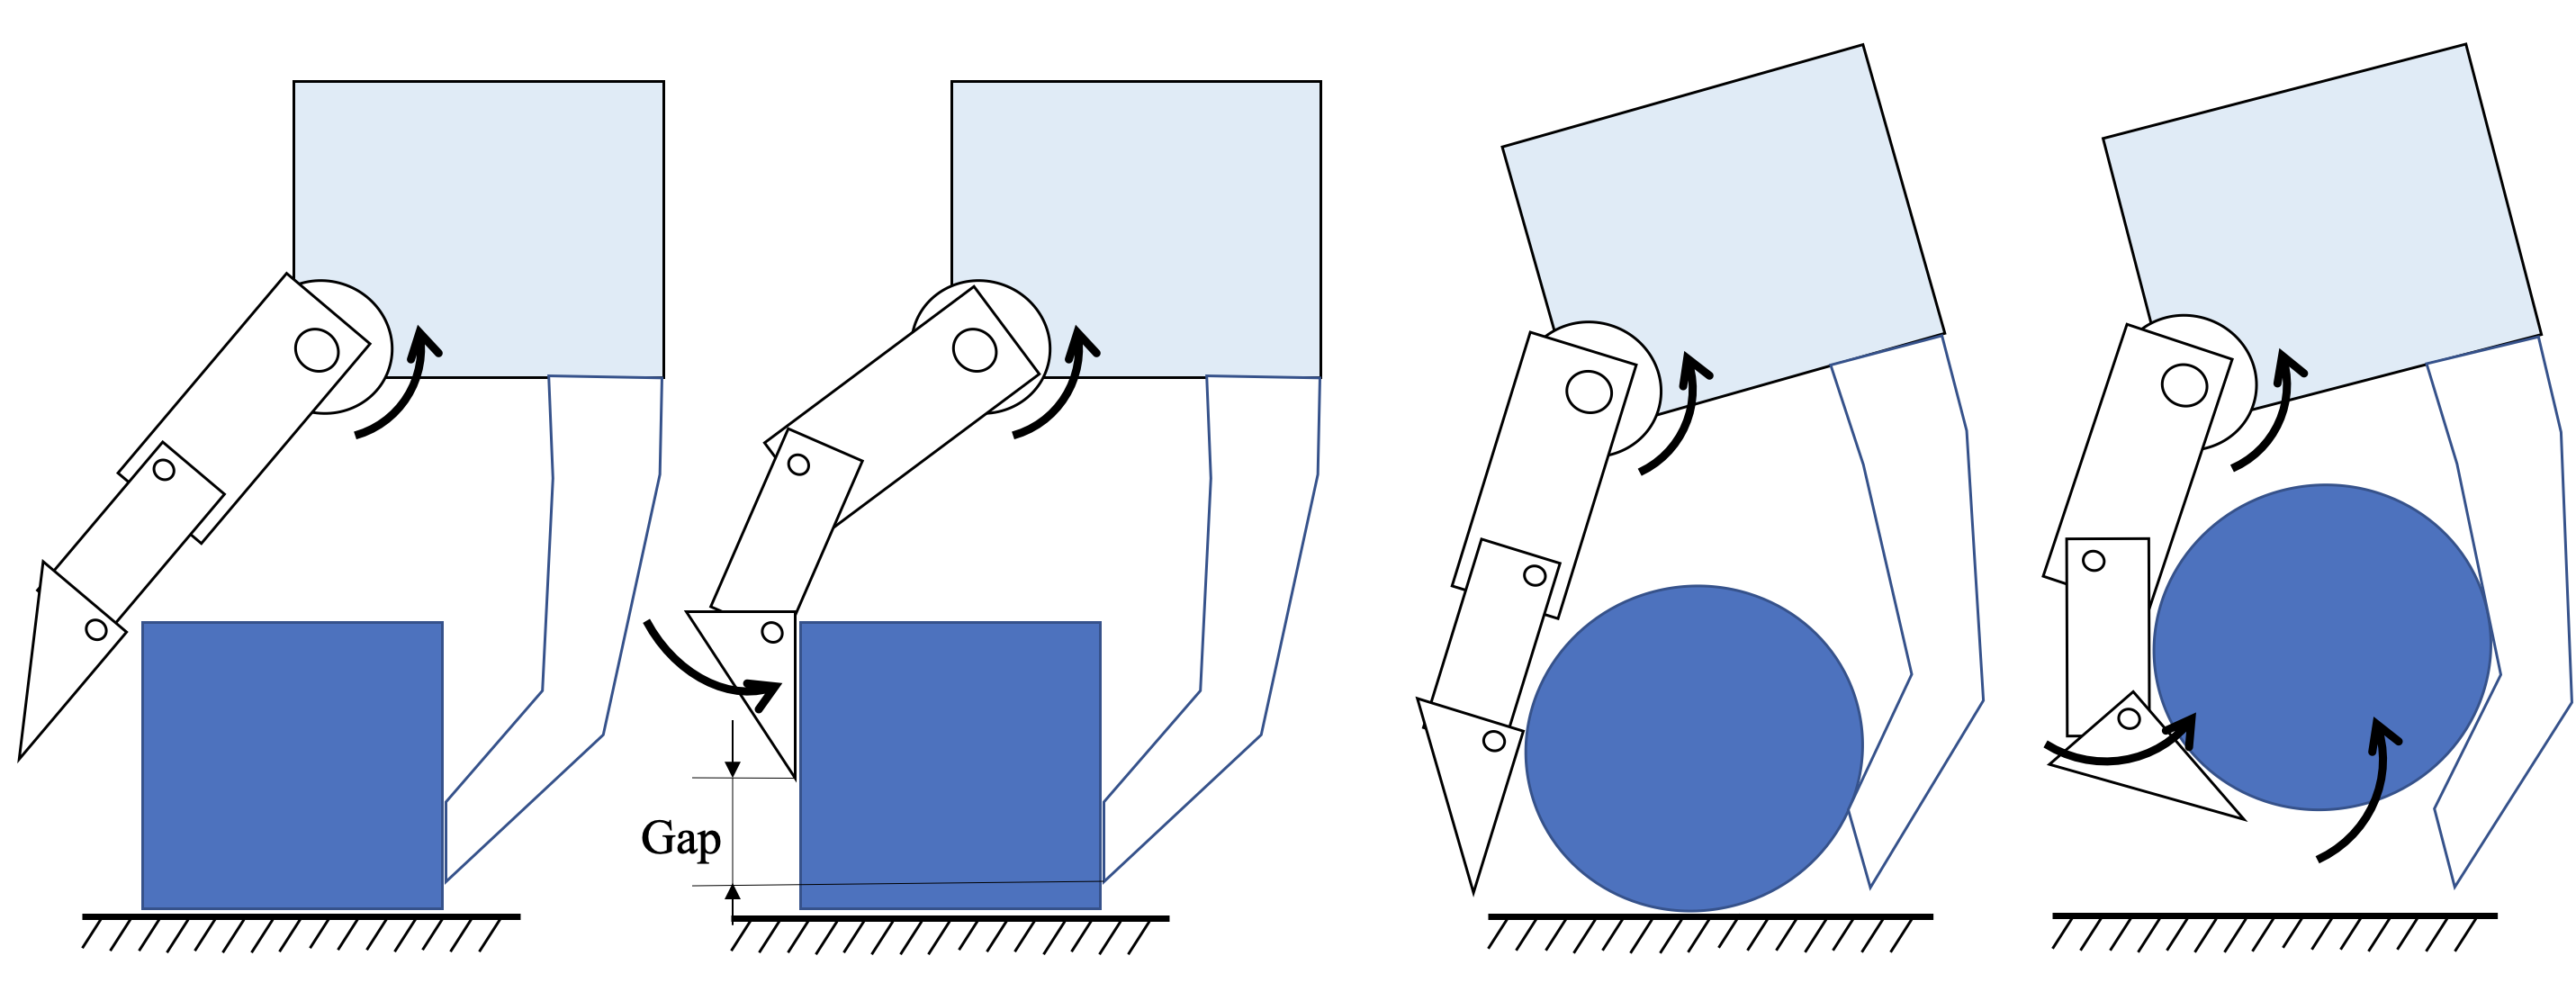 how to grasp an object 2 (fig.2)